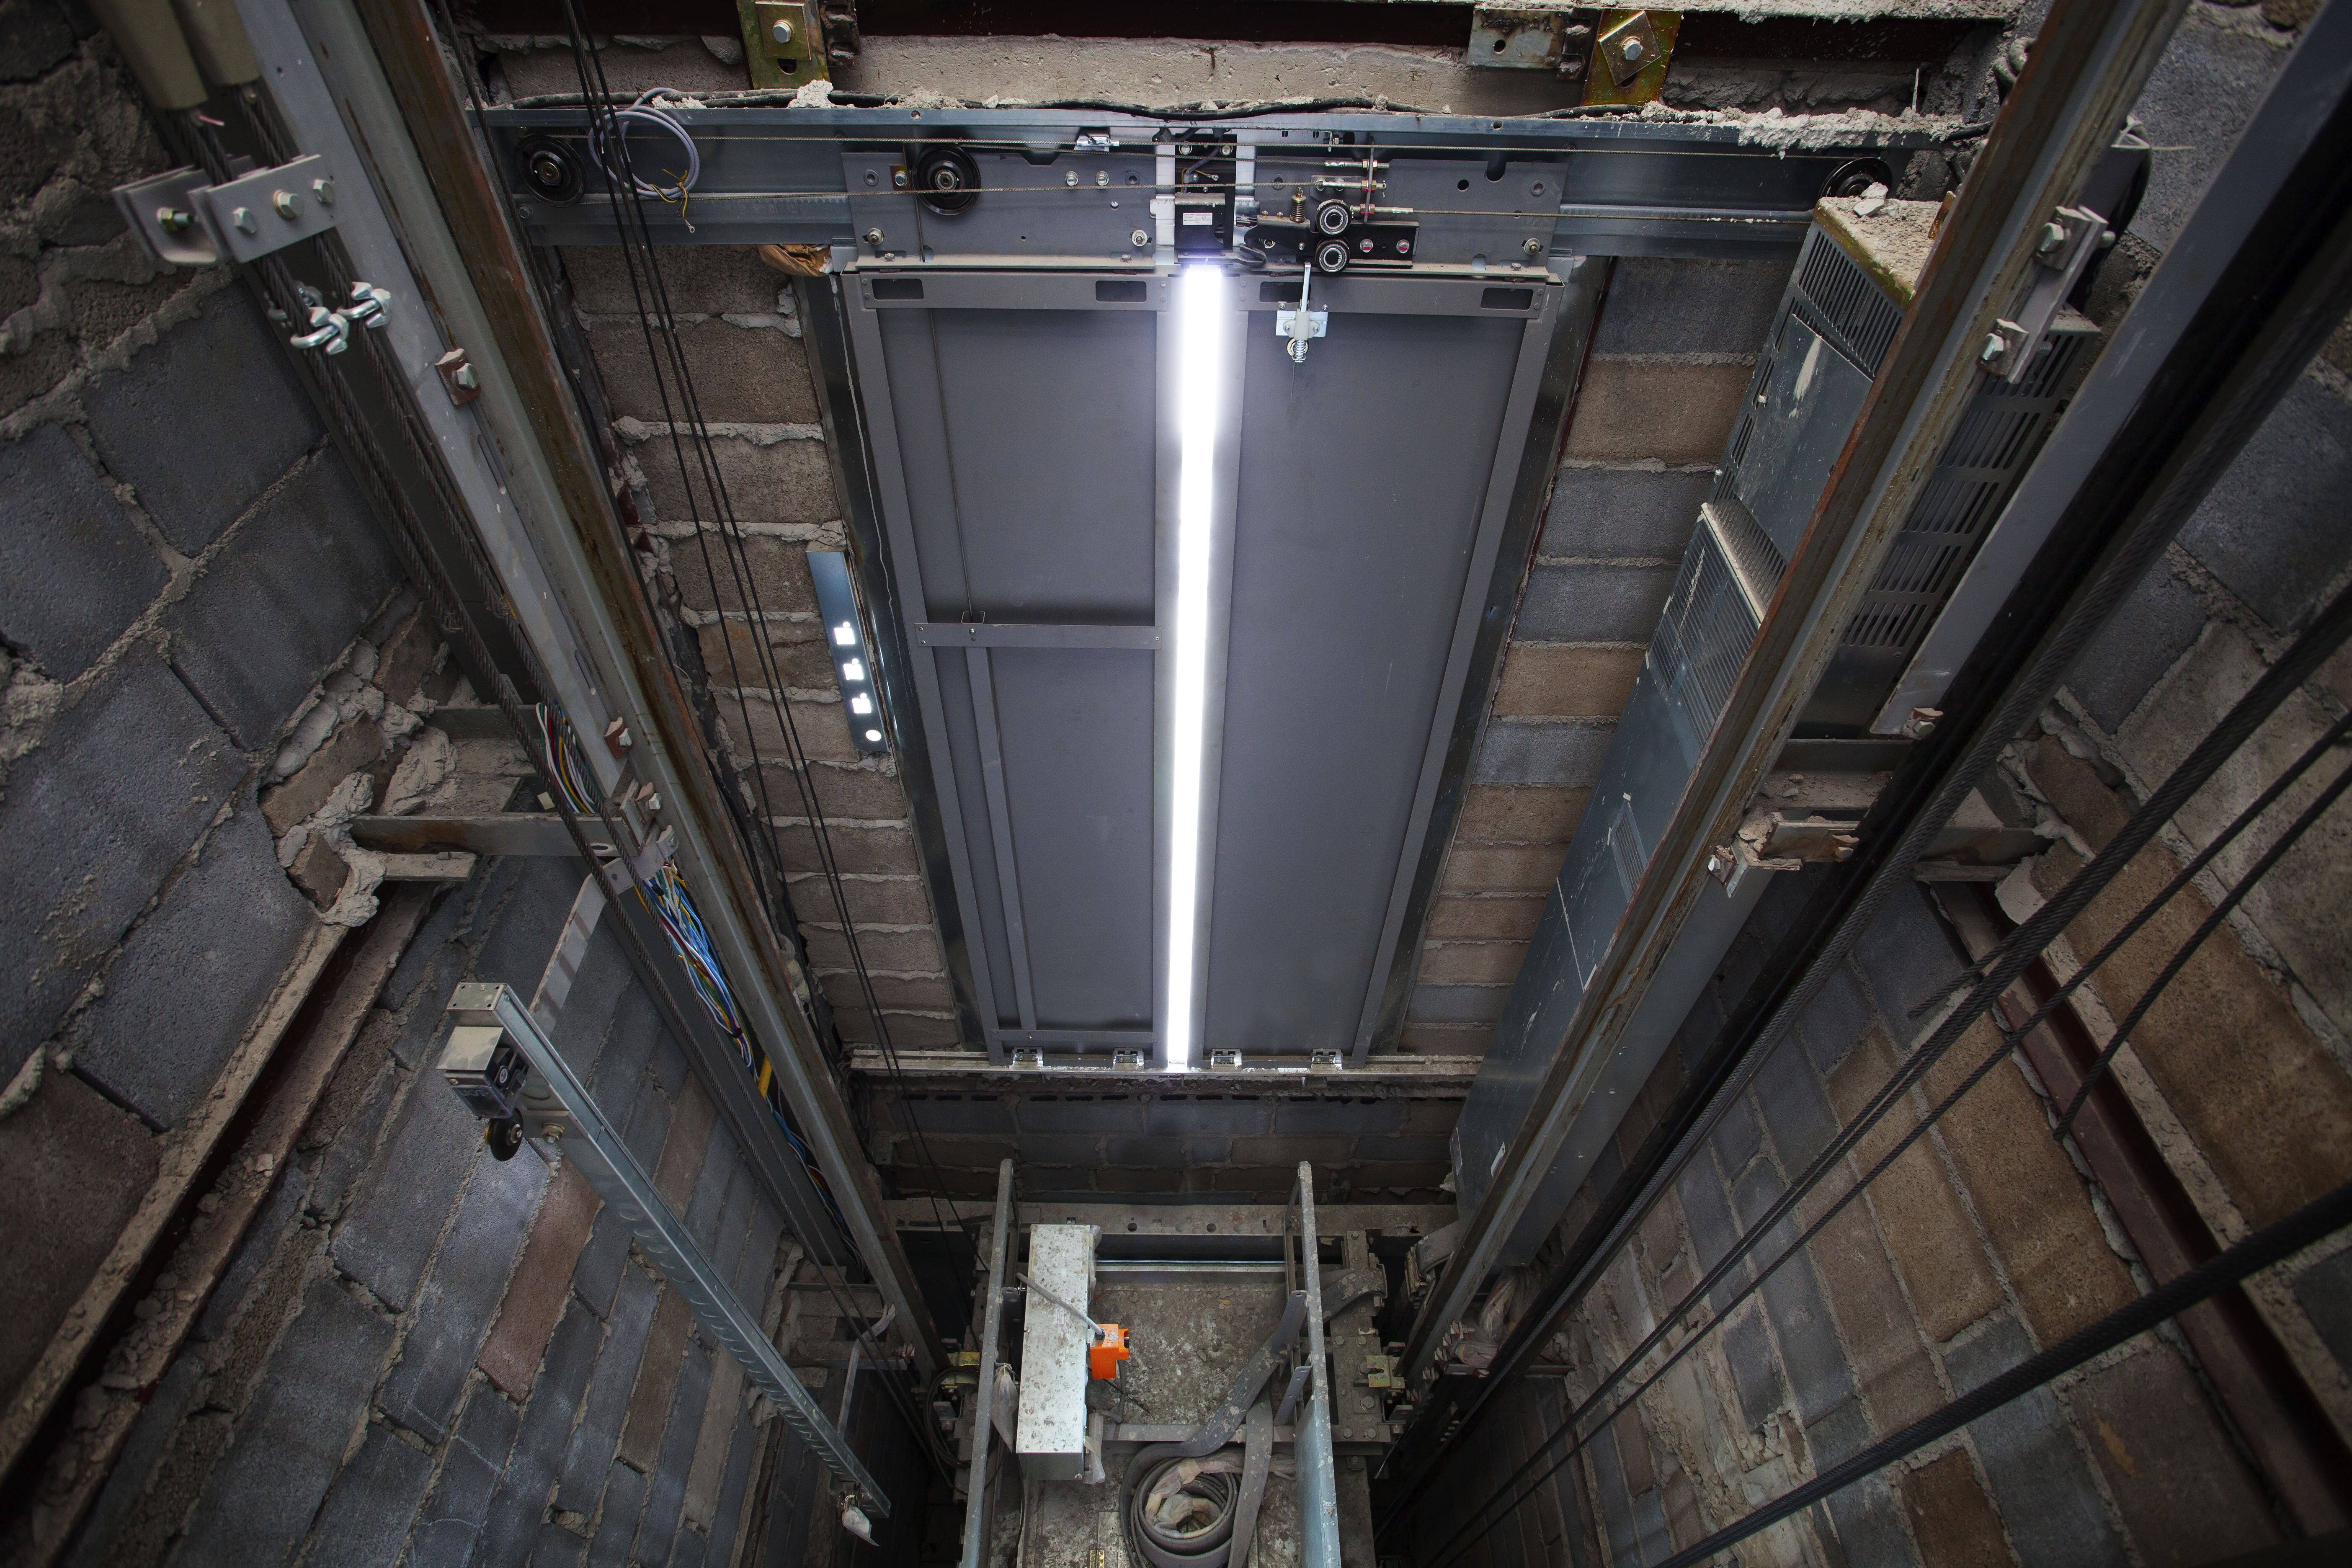 stock-photo-inside-of-roping-elevator-lift-box-built-in-high-building-show-strong-structure-use-for-217281247